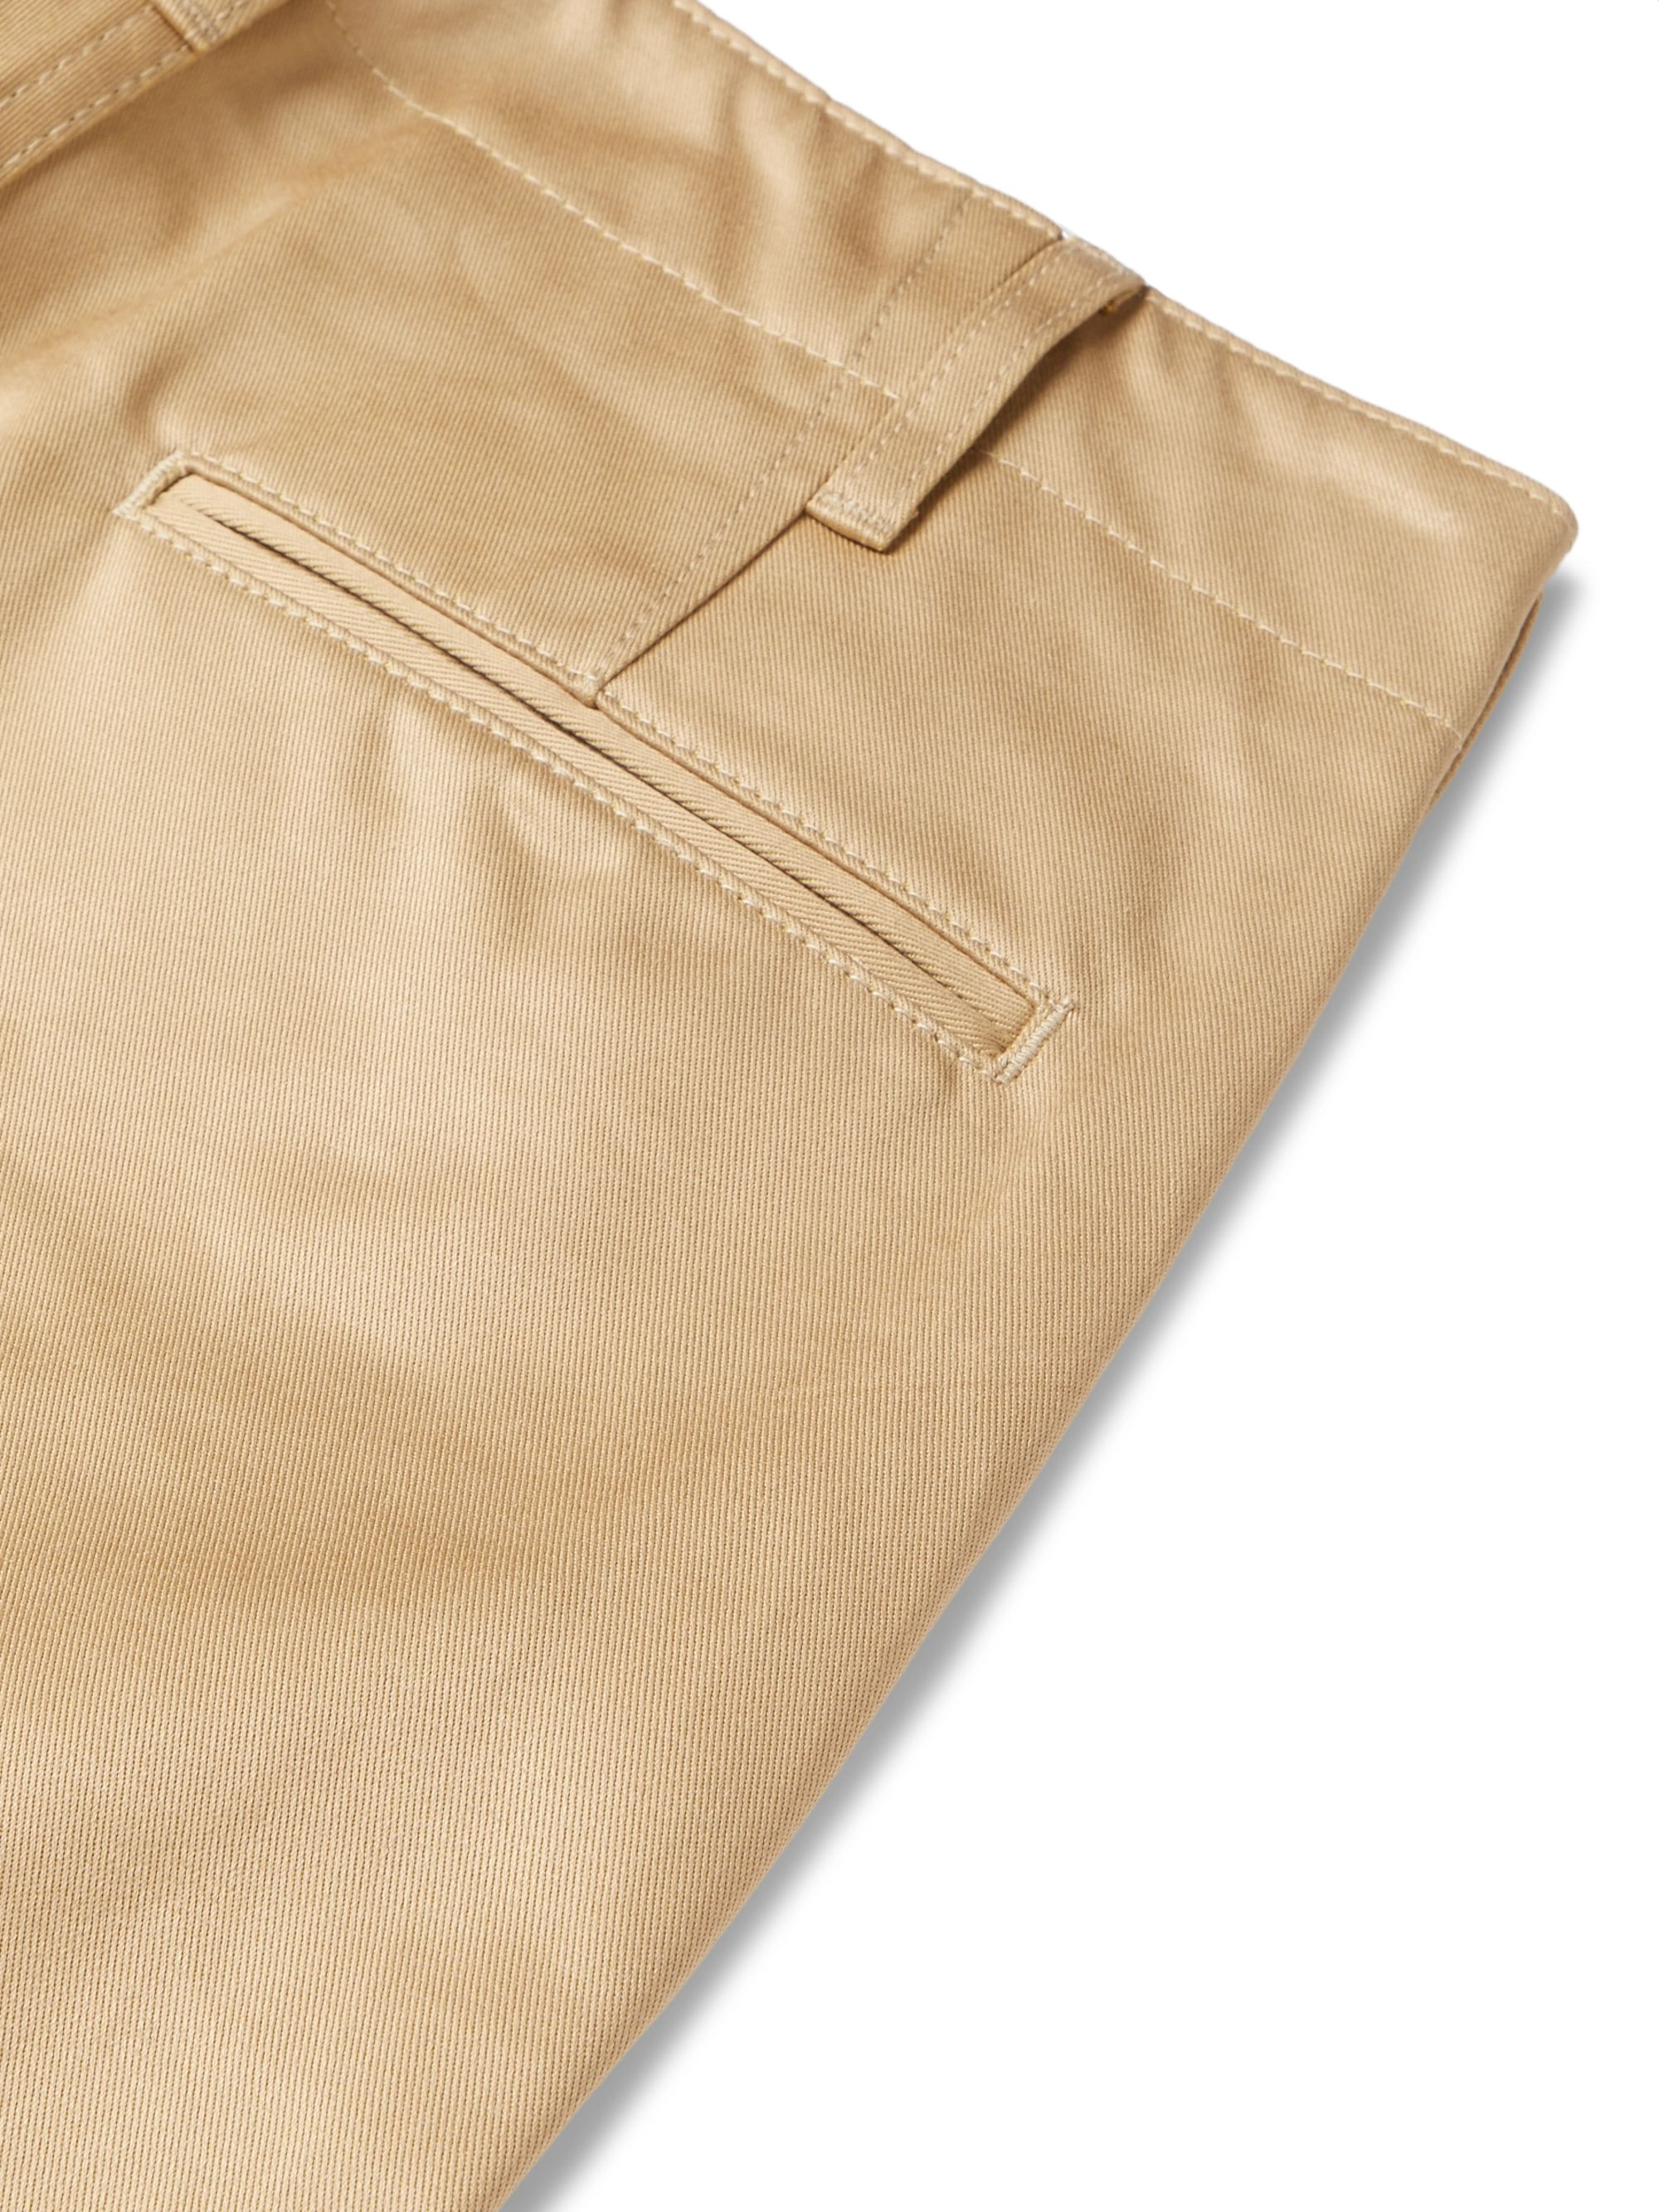 J.Press Cotton-Twill Chinos